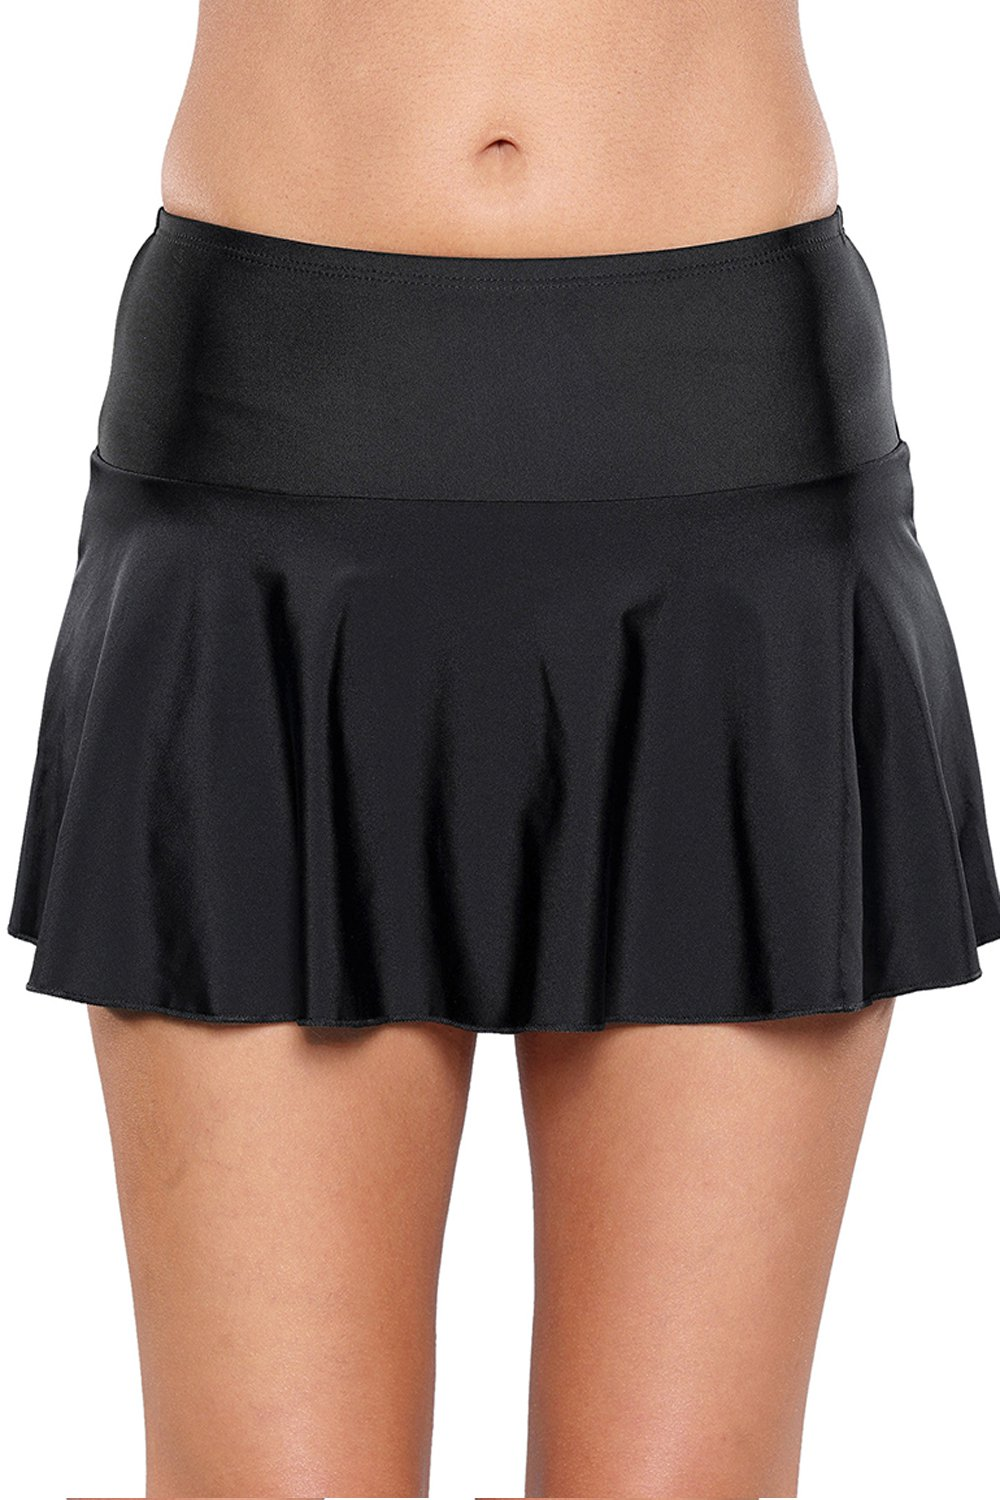 Black Ruffle Swim Skirt